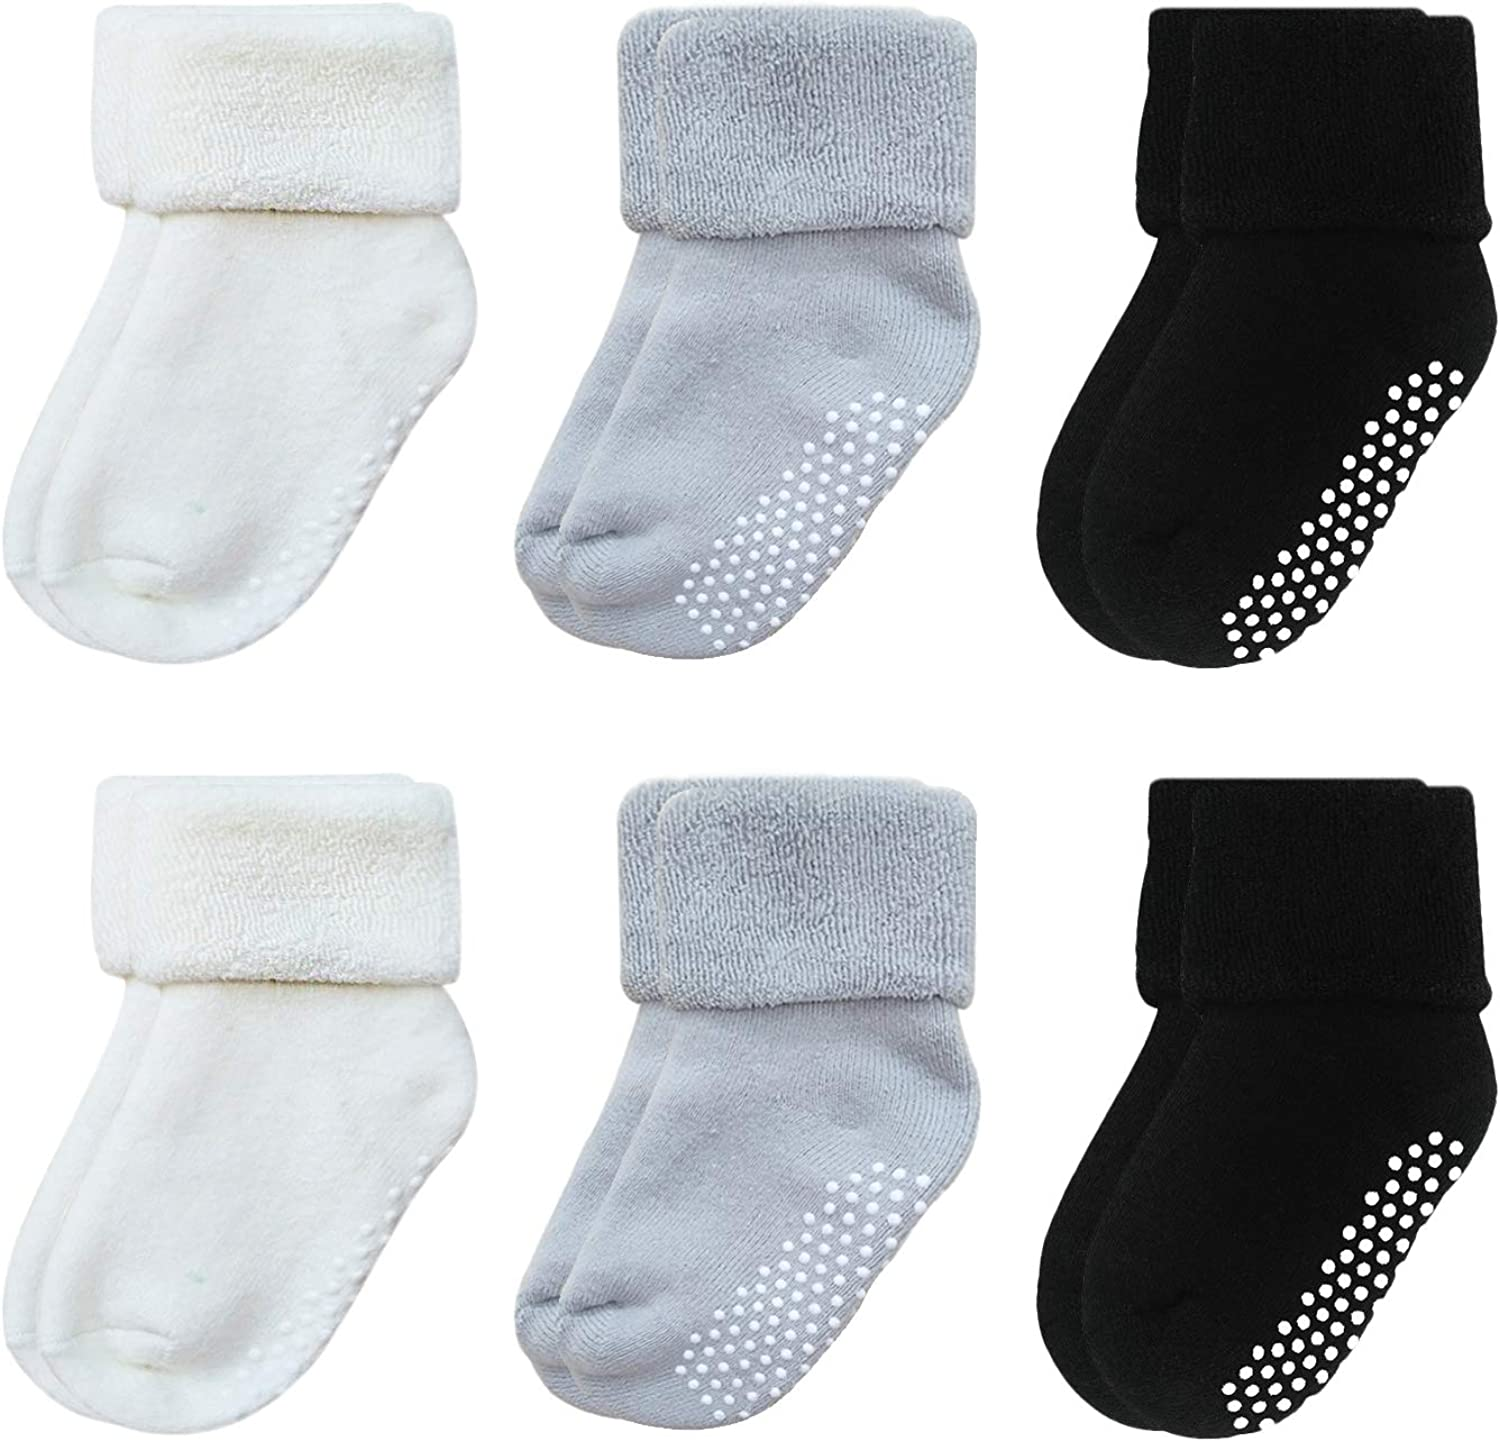 VWU 6 Pack Baby Socks with Grips Toddler Thick Cotton Socks Anti Slip 0-5 Years Old